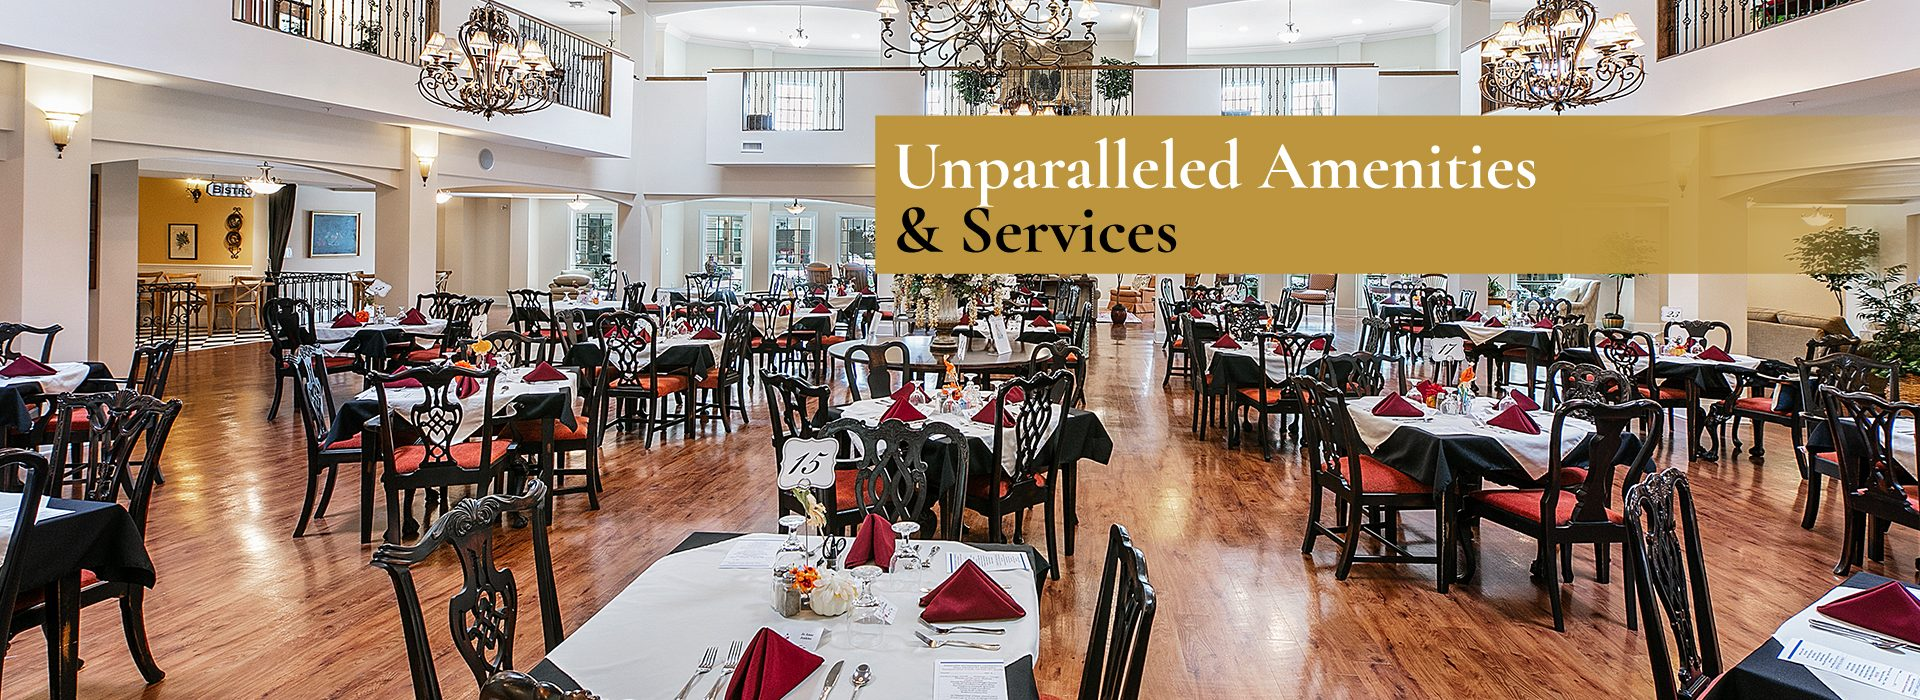 Residents enjoy chef-prepared meals in our beautiful dining facility twice daily.